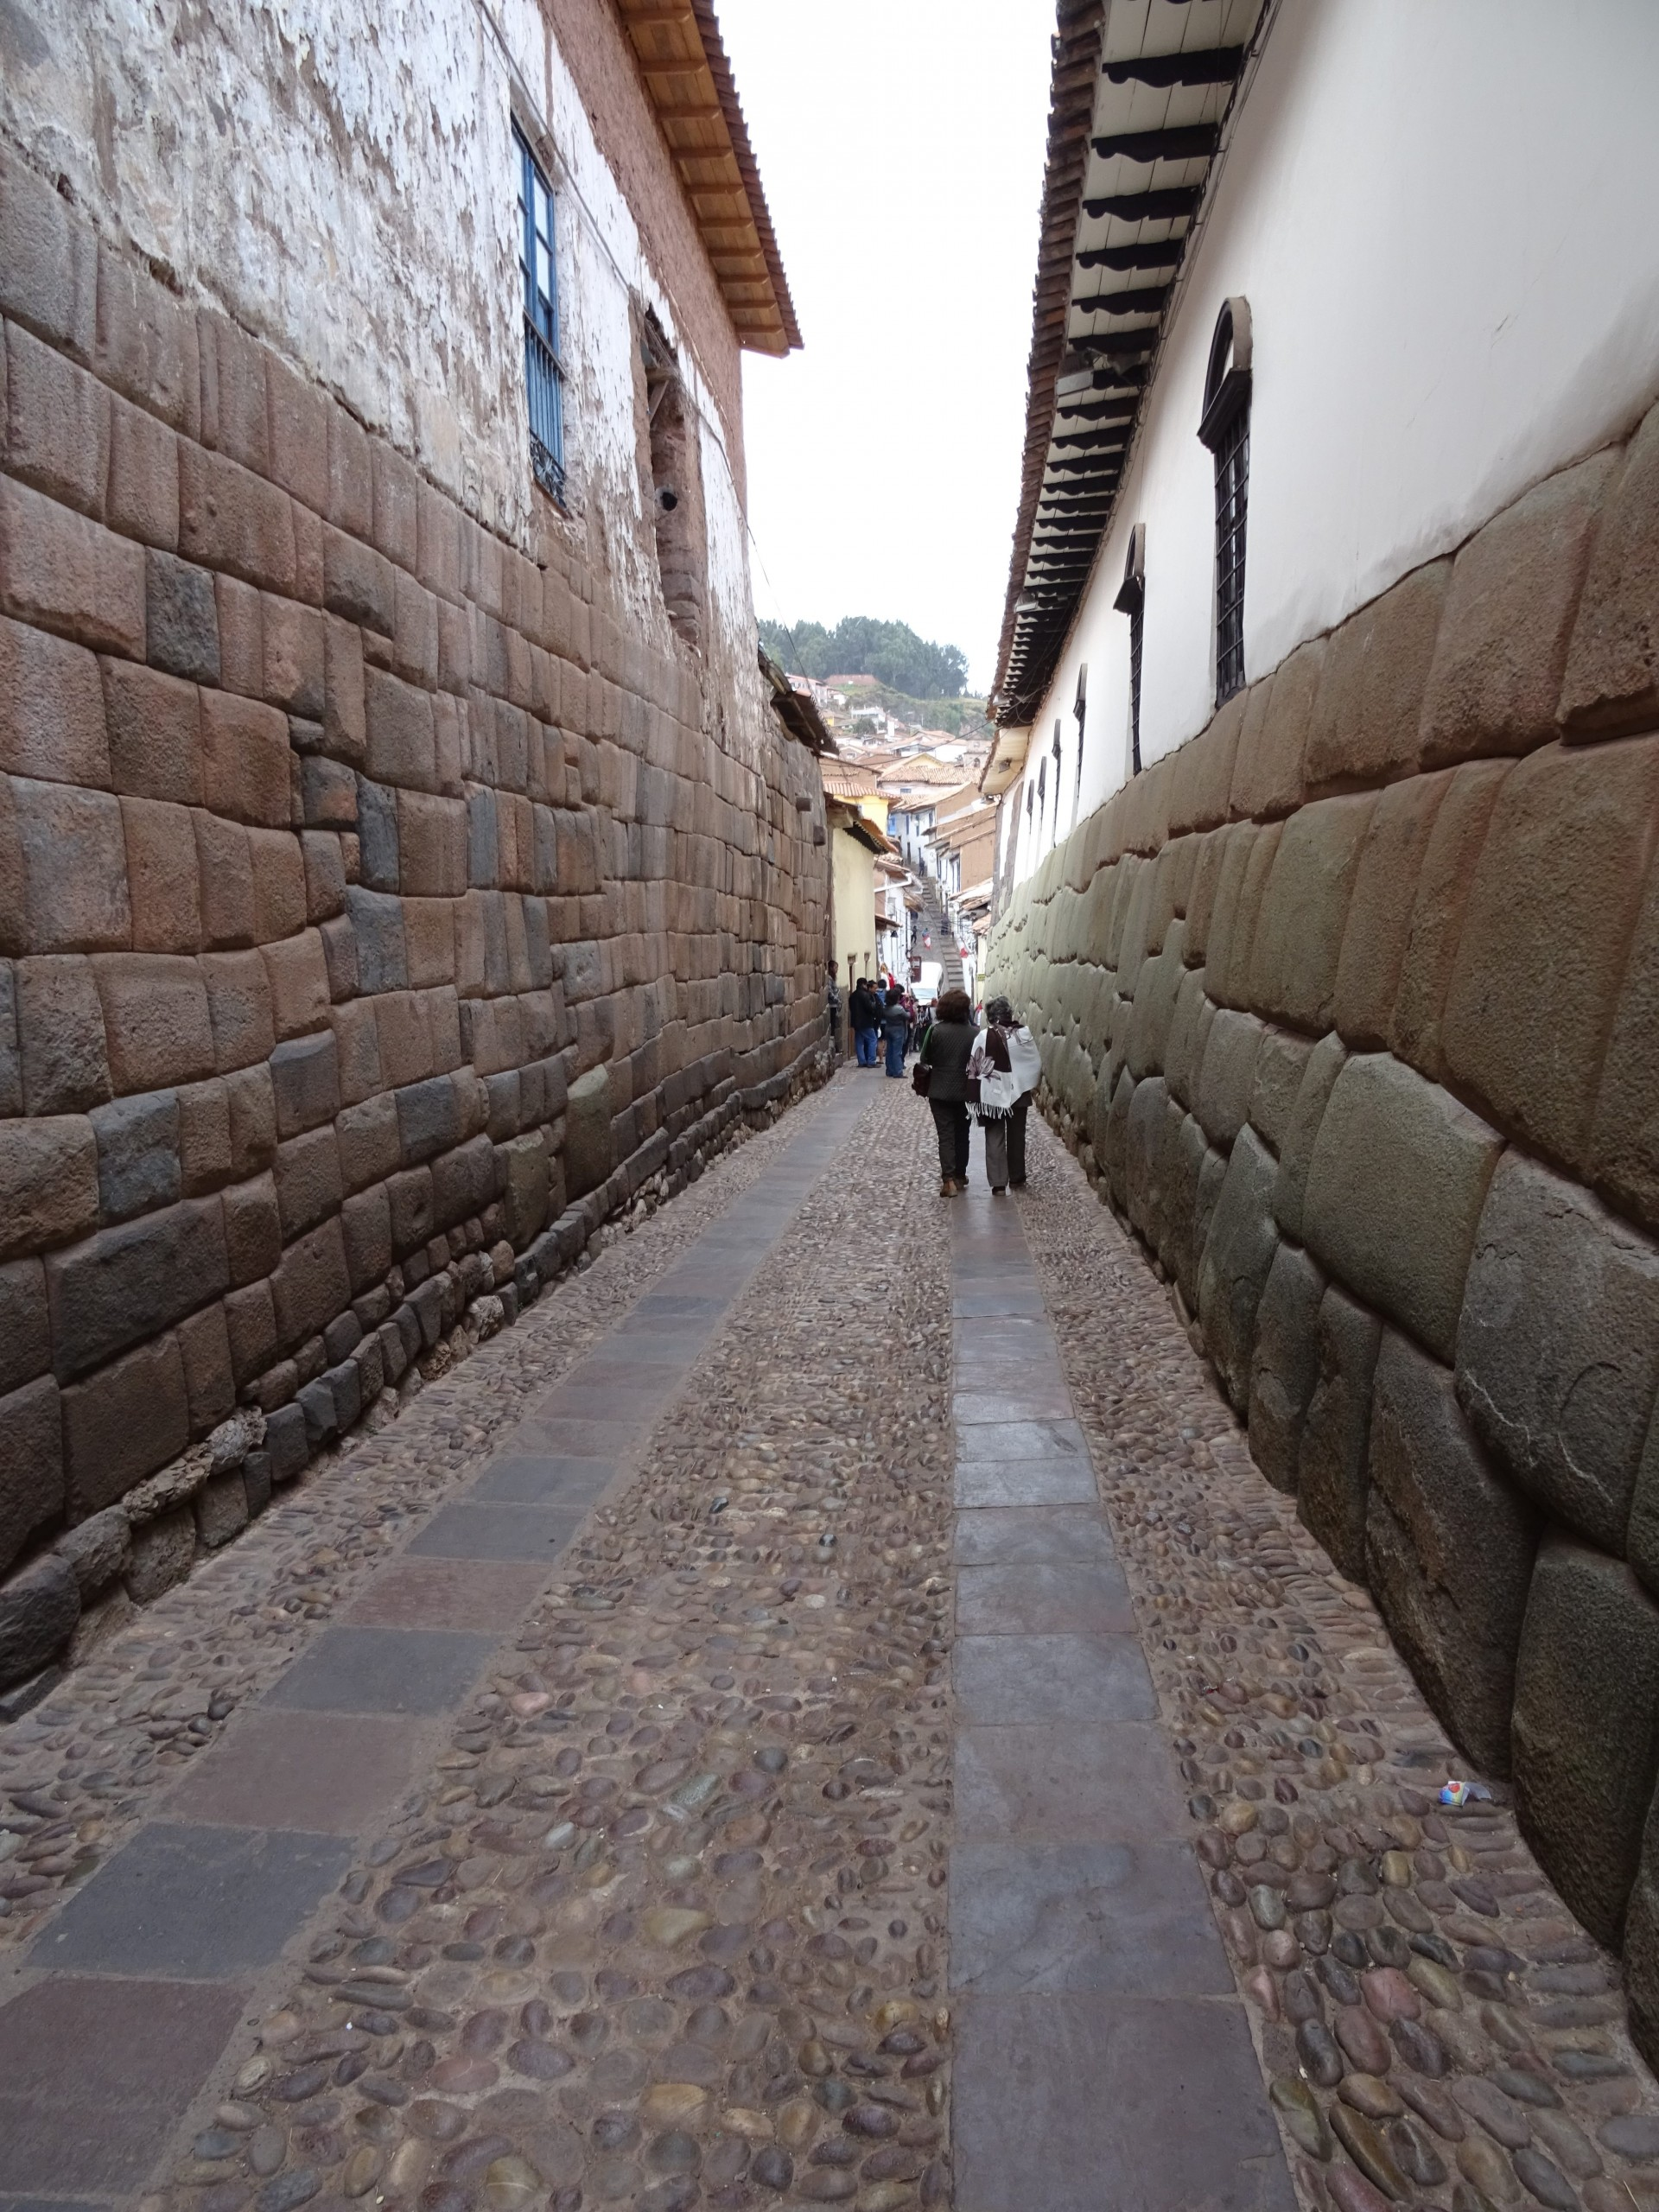 Beautiful Inca stonework under colonial walls.